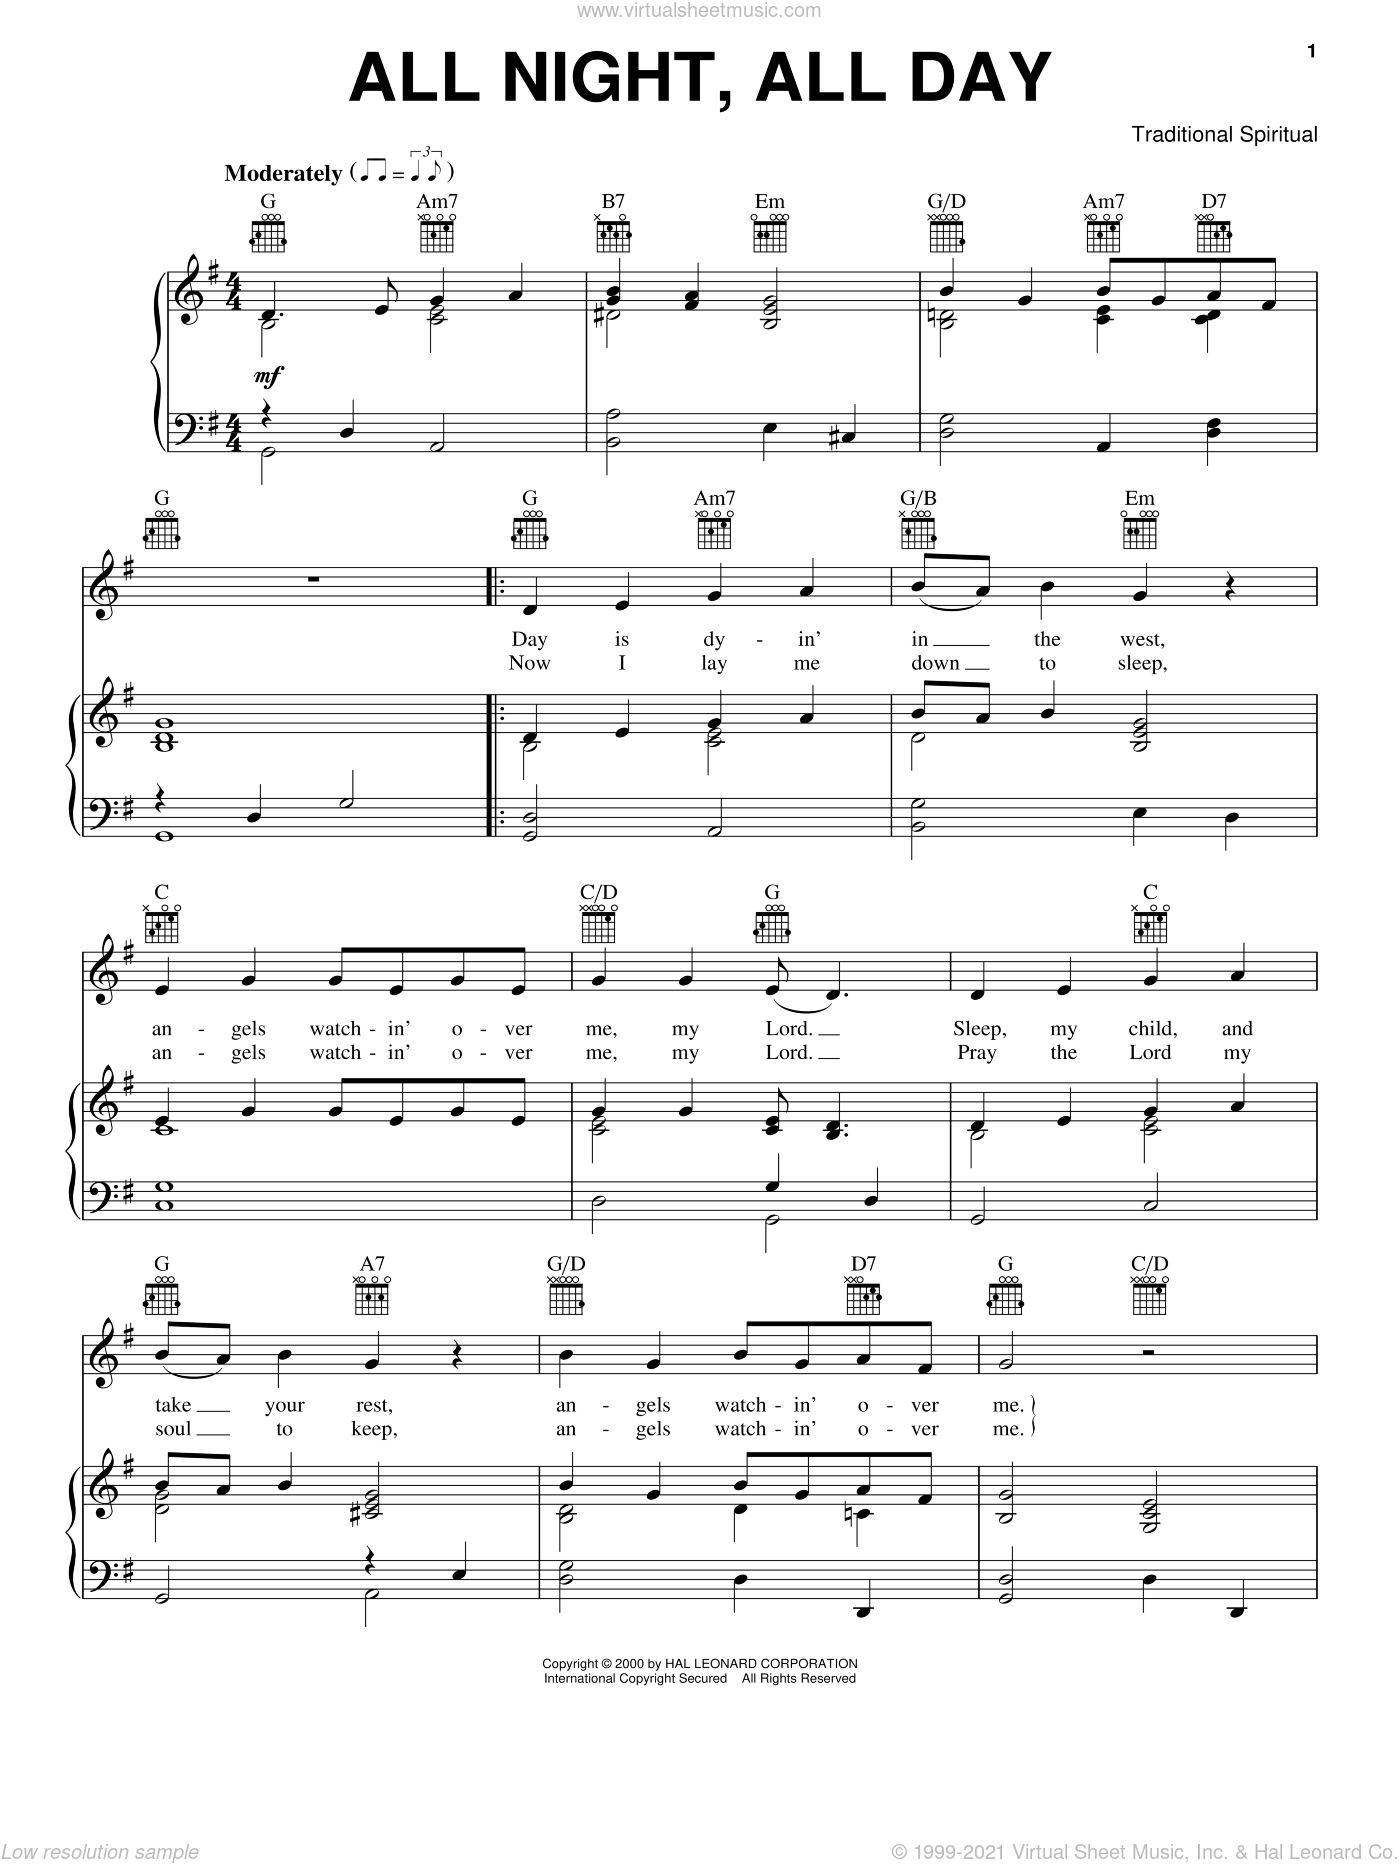 All Night, All Day sheet music for voice, piano or guitar, intermediate skill level